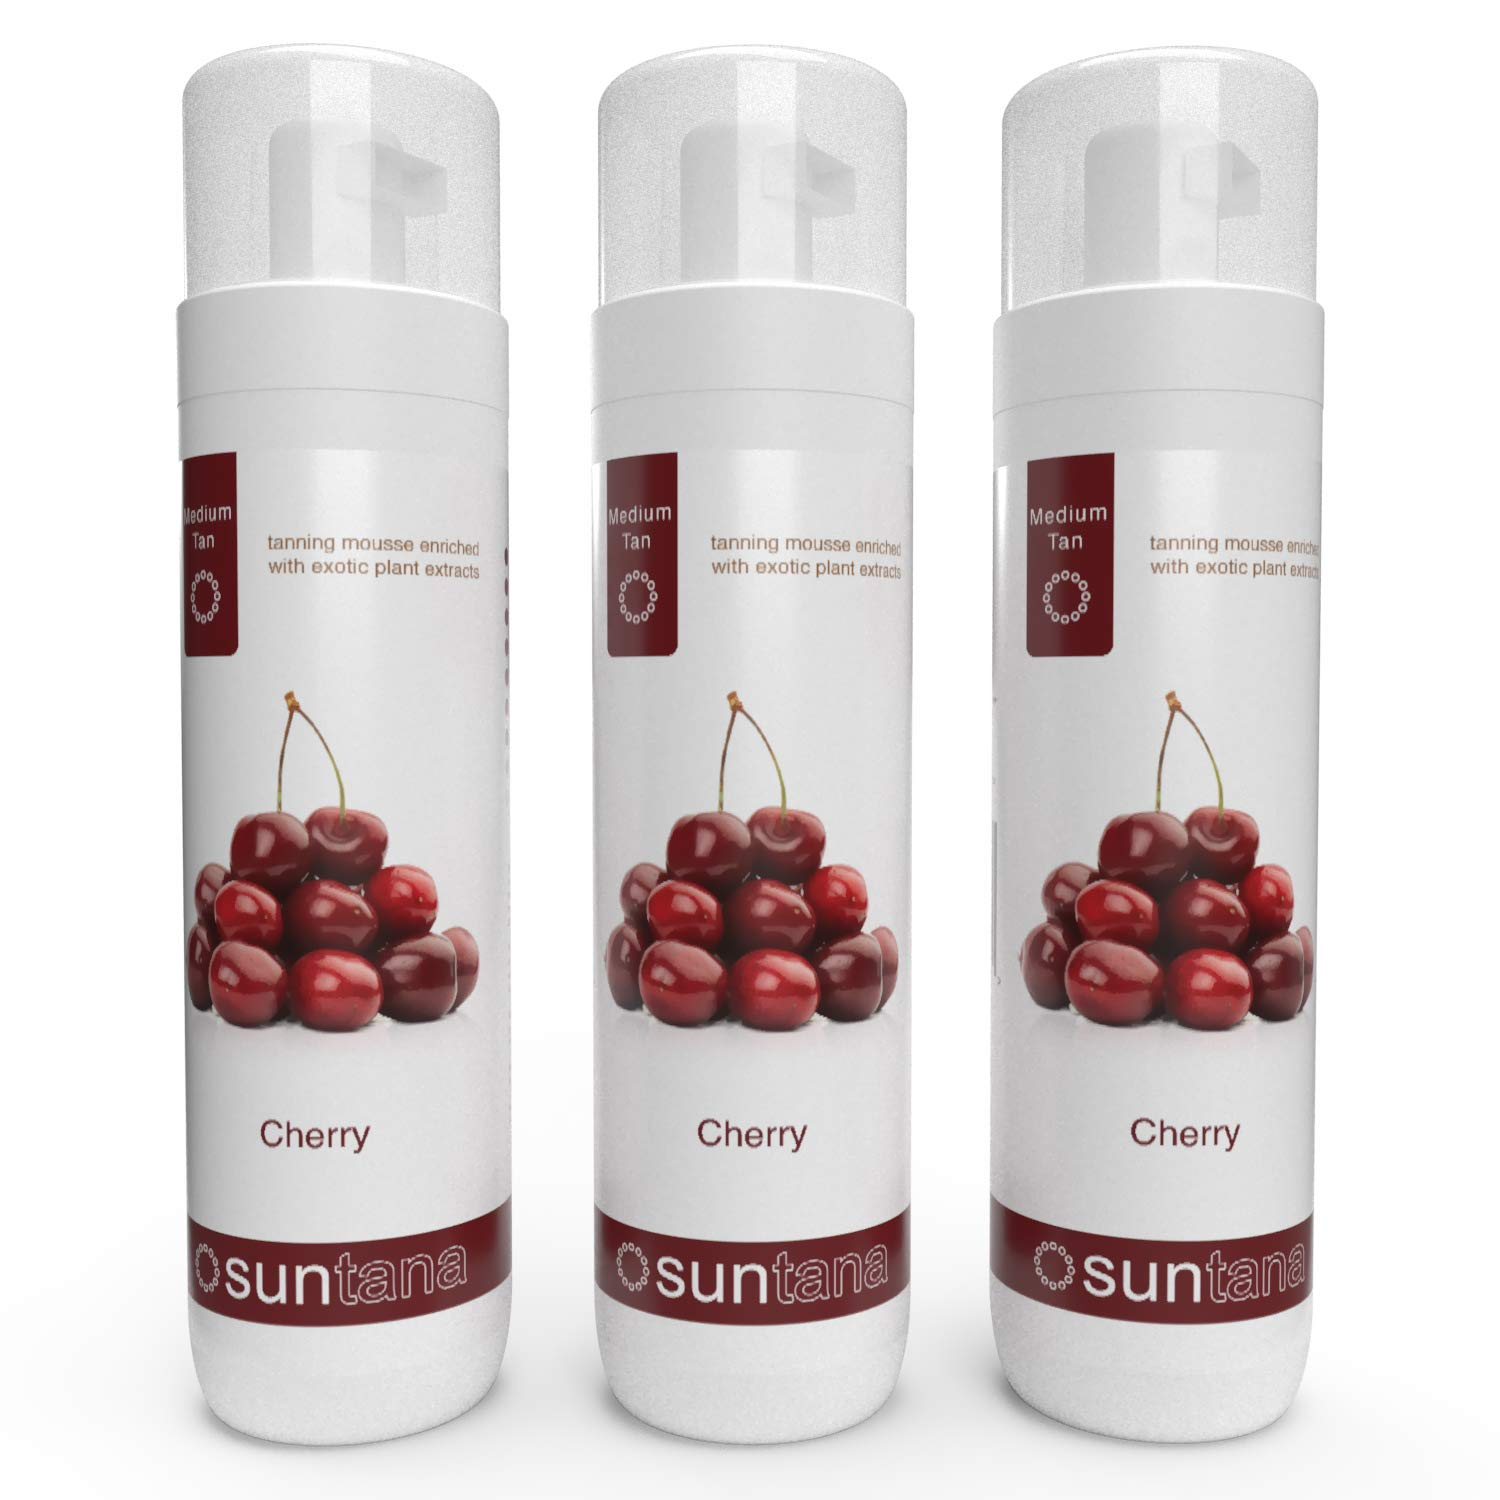 3 x Suntana Cherry Fragranced 10% Sunless Self Tanning Mousse - Medium Tan by Suntana